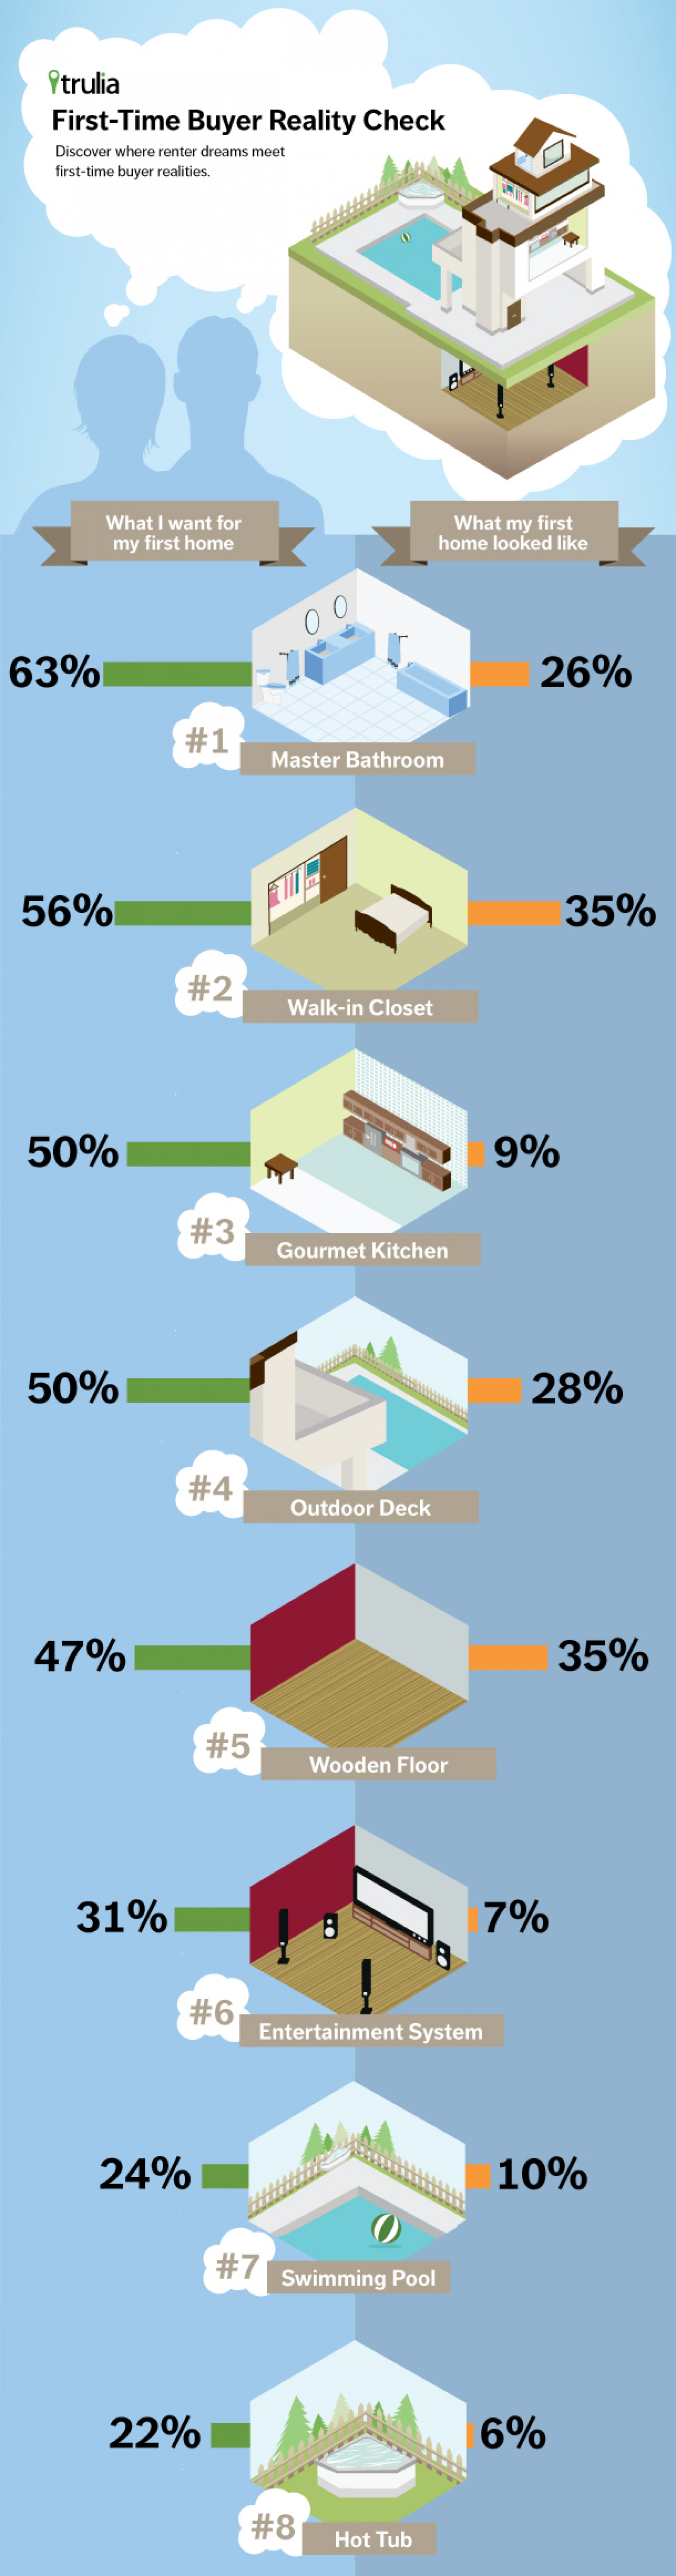 First-Time Buyer Reality Check Infographic